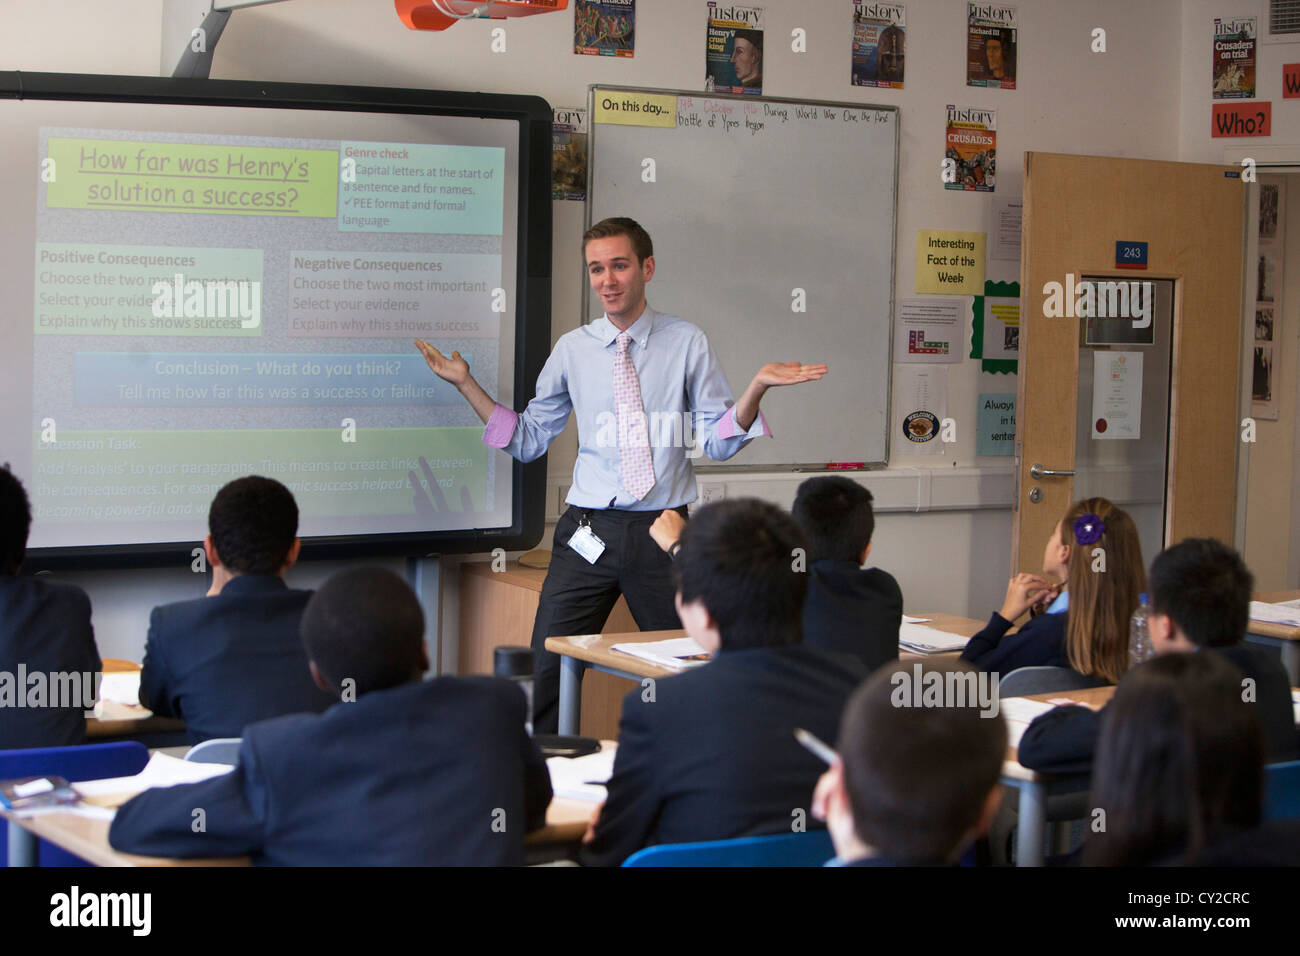 Teacher takes a class at Pimlico Academy, a modern secondary school providing aspirational education in London, - Stock Image